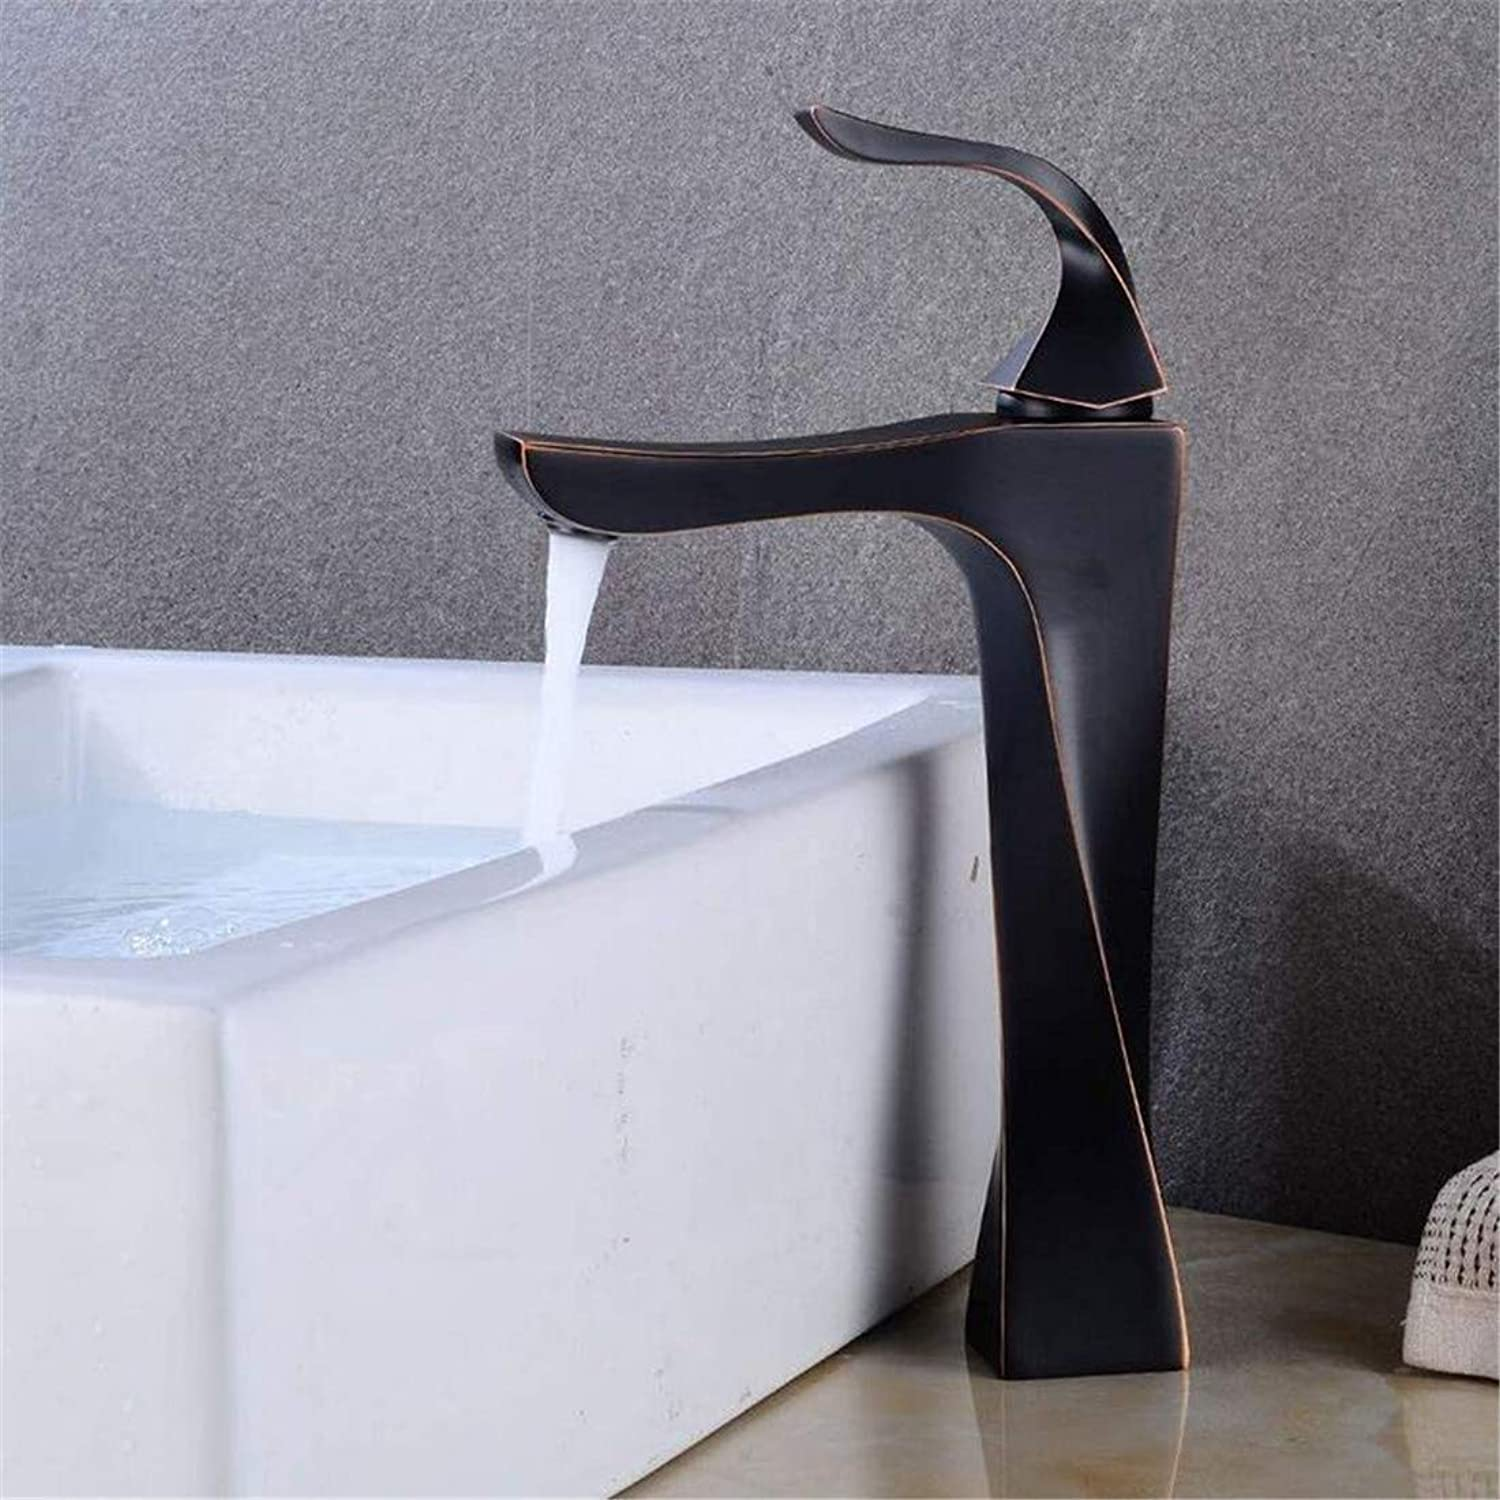 Faucet Brass Chrome Hot and Cold Water Counter Basin Faucet Faucet Retro Basin Black Ancient Hot and Cold Above Counter Basin Retro Wash Basin